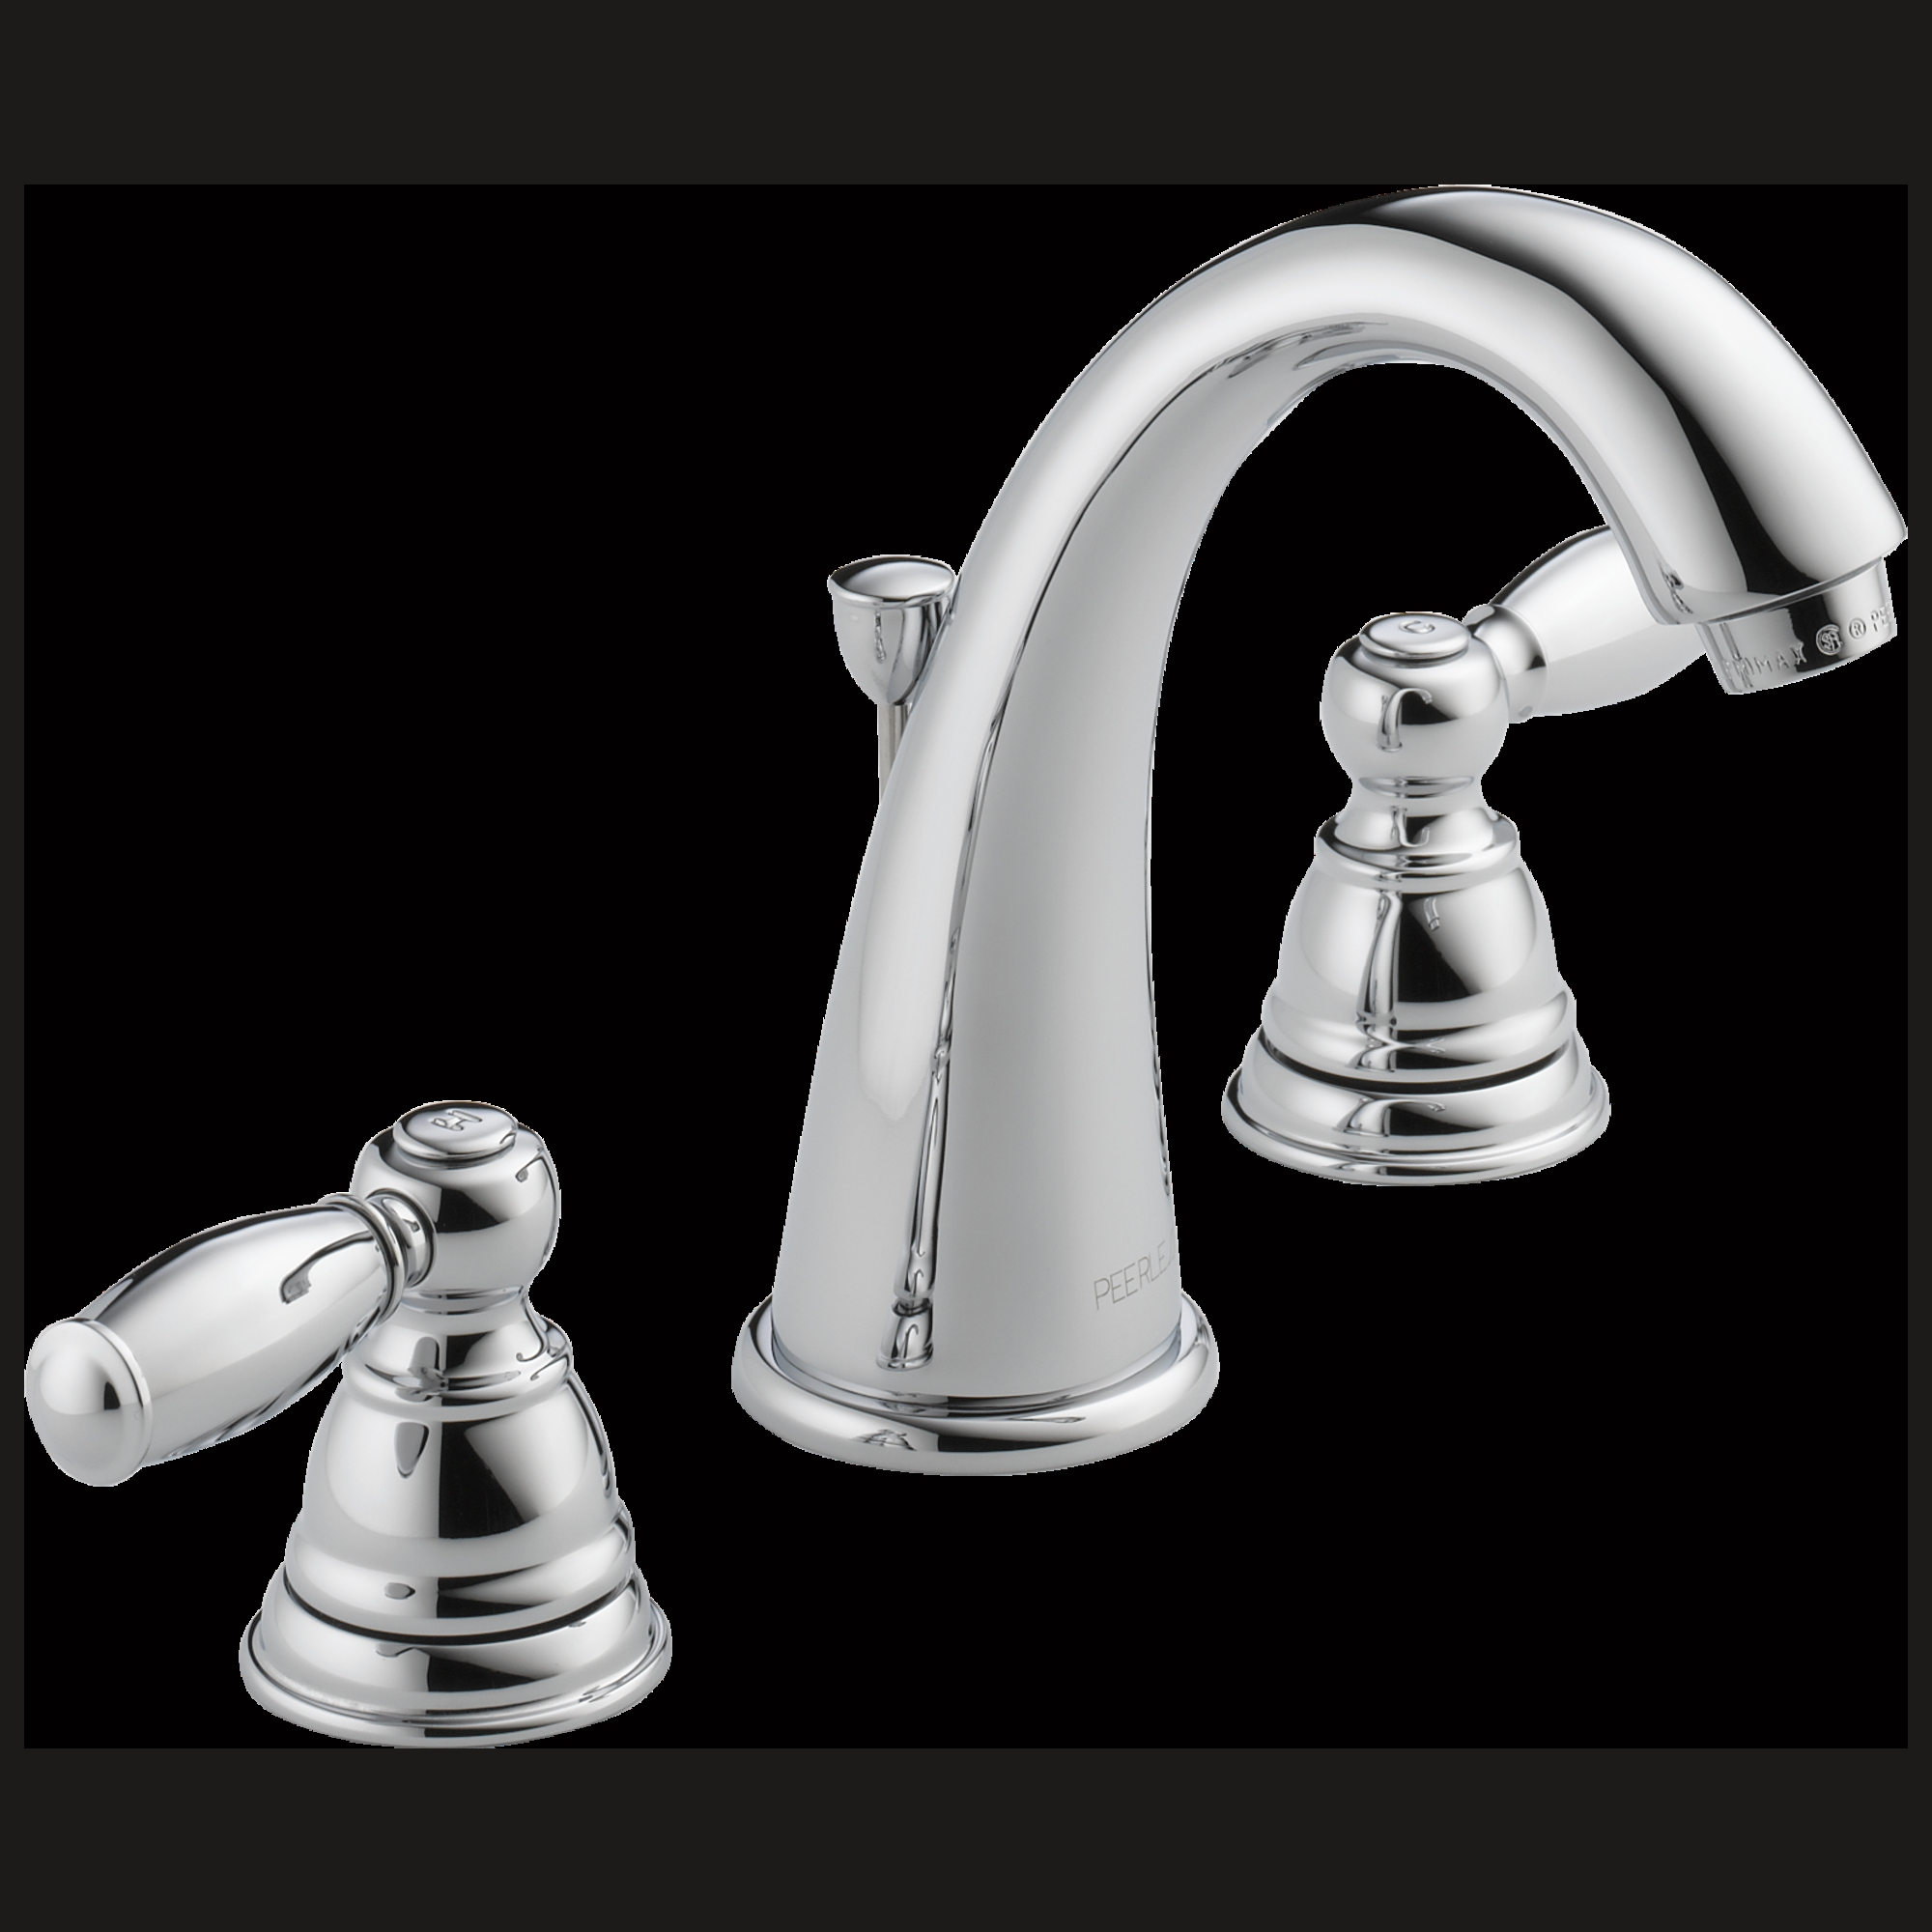 Ideas, peerless two handle tub and shower faucet peerless two handle tub and shower faucet peerless faucet 2000 x 2000  .